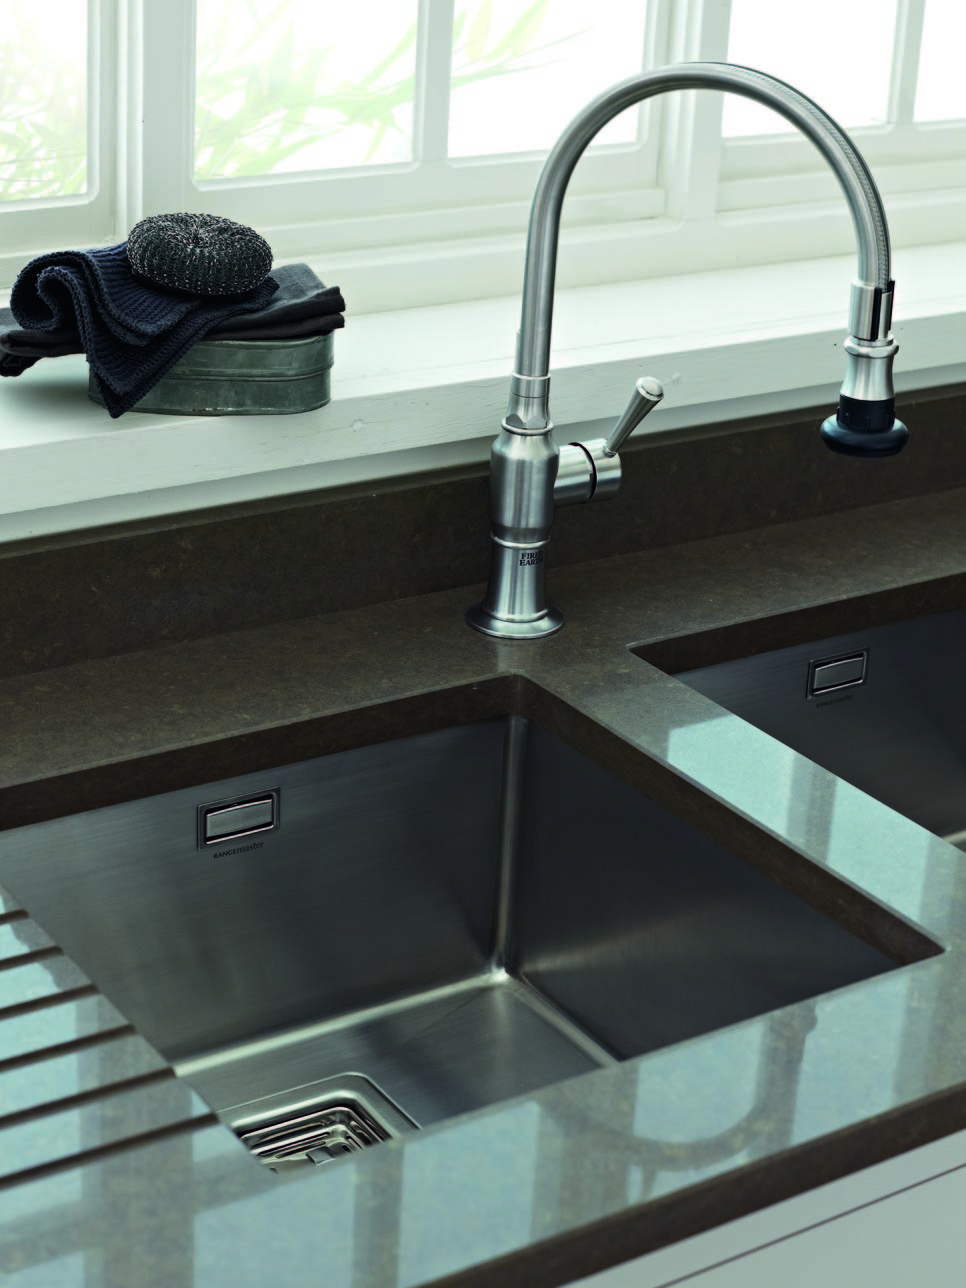 Choosing The Right Kitchen Sink Property Price Advice - Kitchen sink models